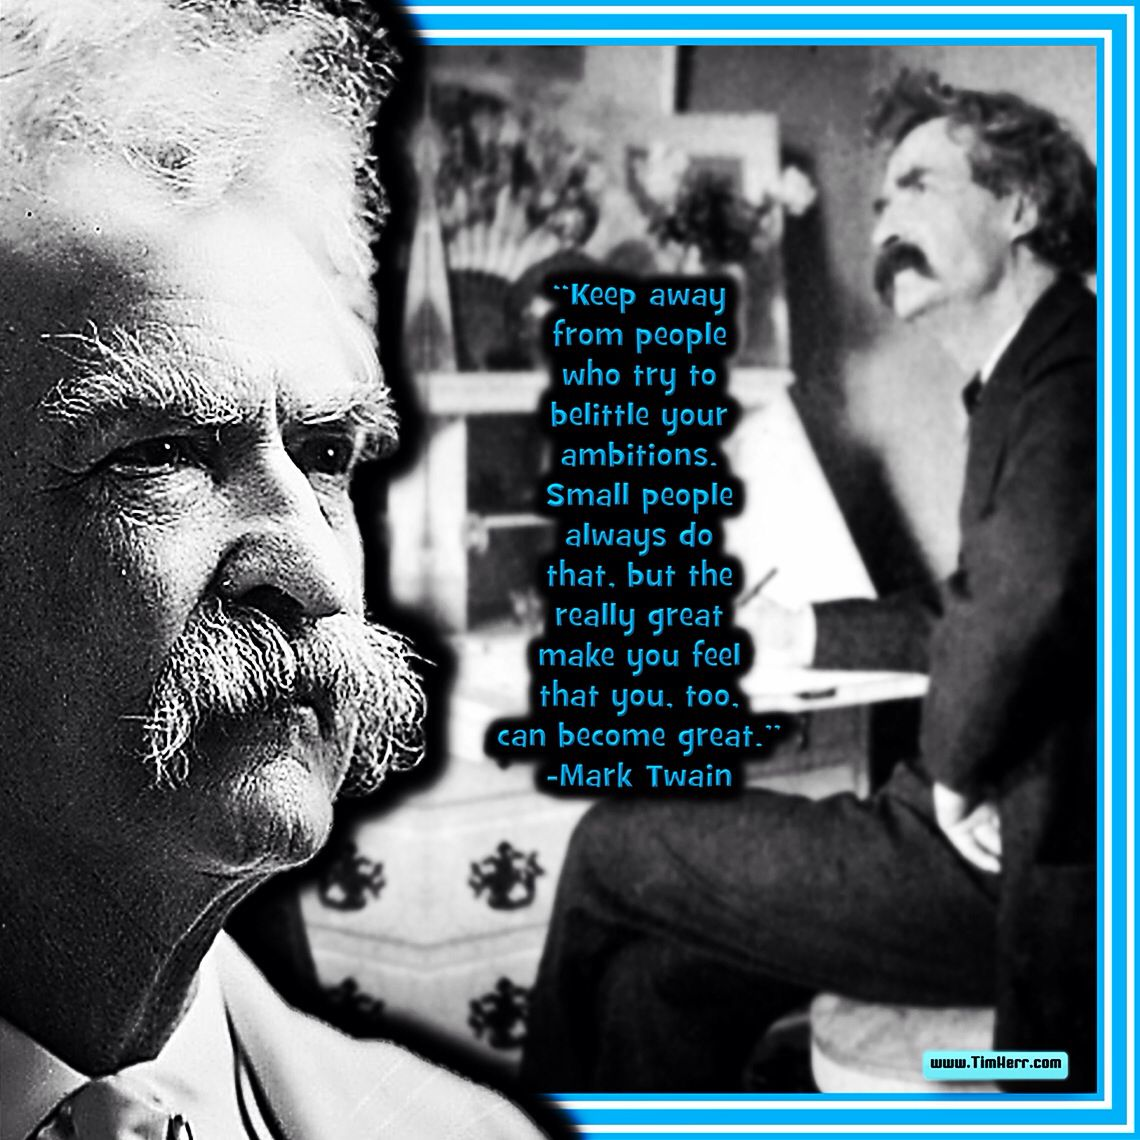 """""""Keep away from people who try to belittle your ambitions. Small people always do that, but the really great make you feel that you, too, can become great."""" -Mark Twain (US Writer 1835-1910) #QuoteOfTheDay"""